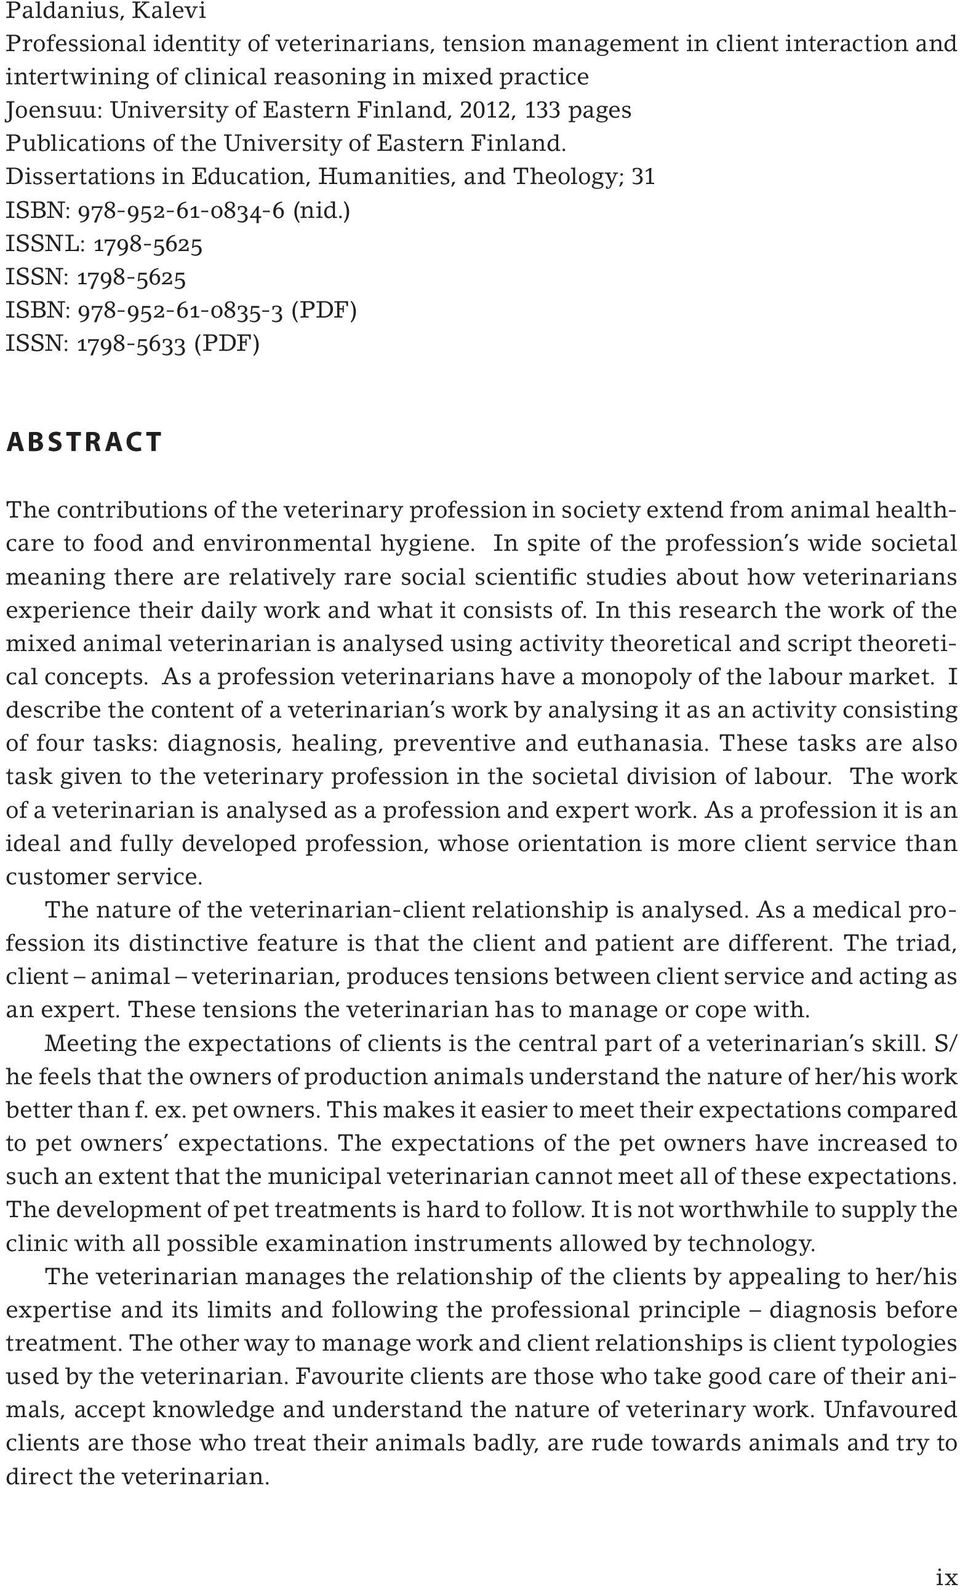 ) issnl: 1798-5625 issn: 1798-5625 isbn: 978-952-61-0835-3 (pdf) issn: 1798-5633 (pdf) ABSTRACT The contributions of the veterinary profession in society extend from animal healthcare to food and